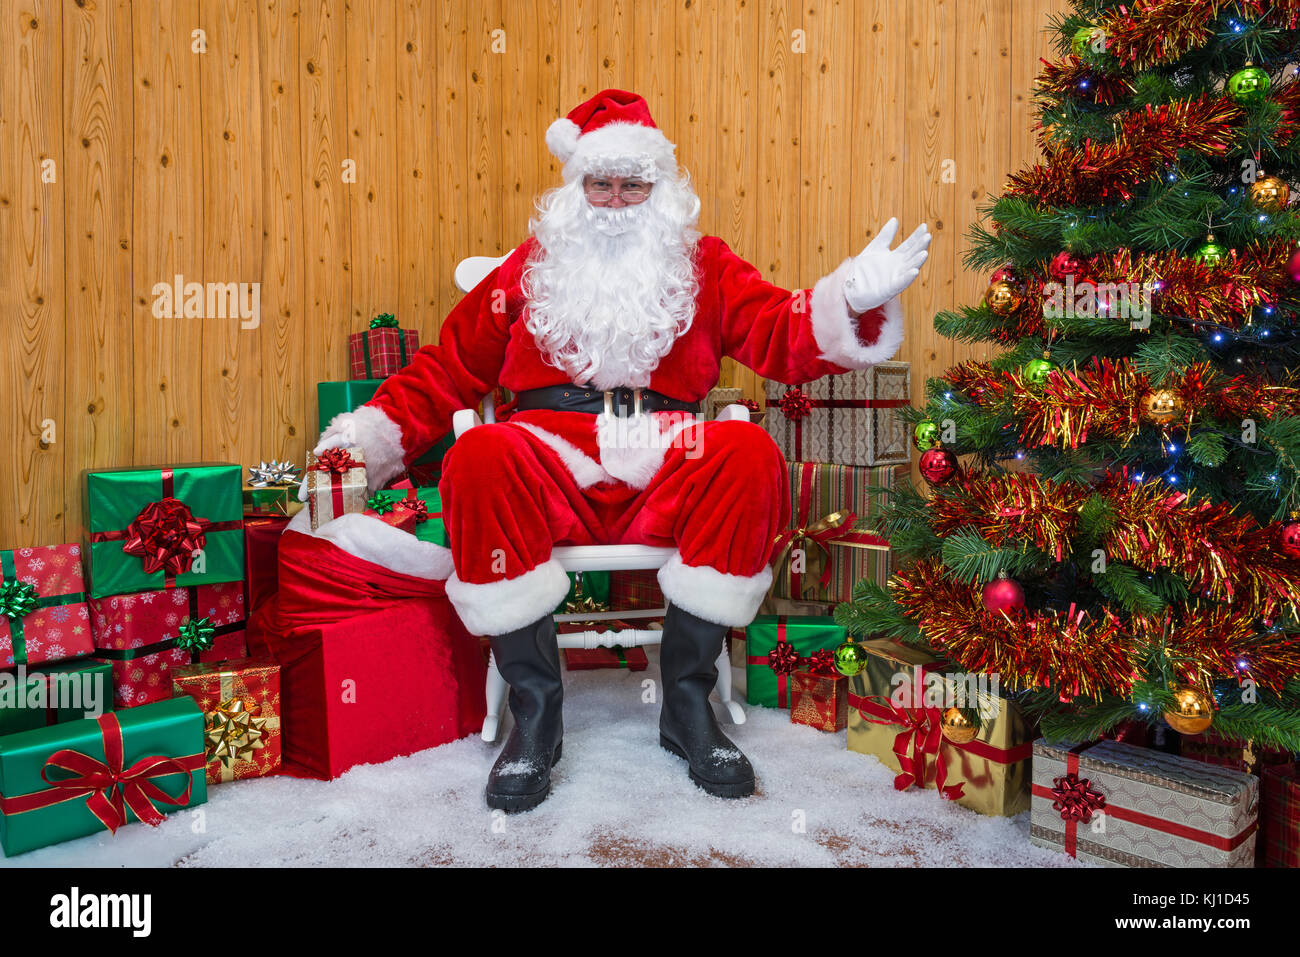 Santa Claus getting a gift wrapped present out of his sack as he welcomes you into his grotto. - Stock Image